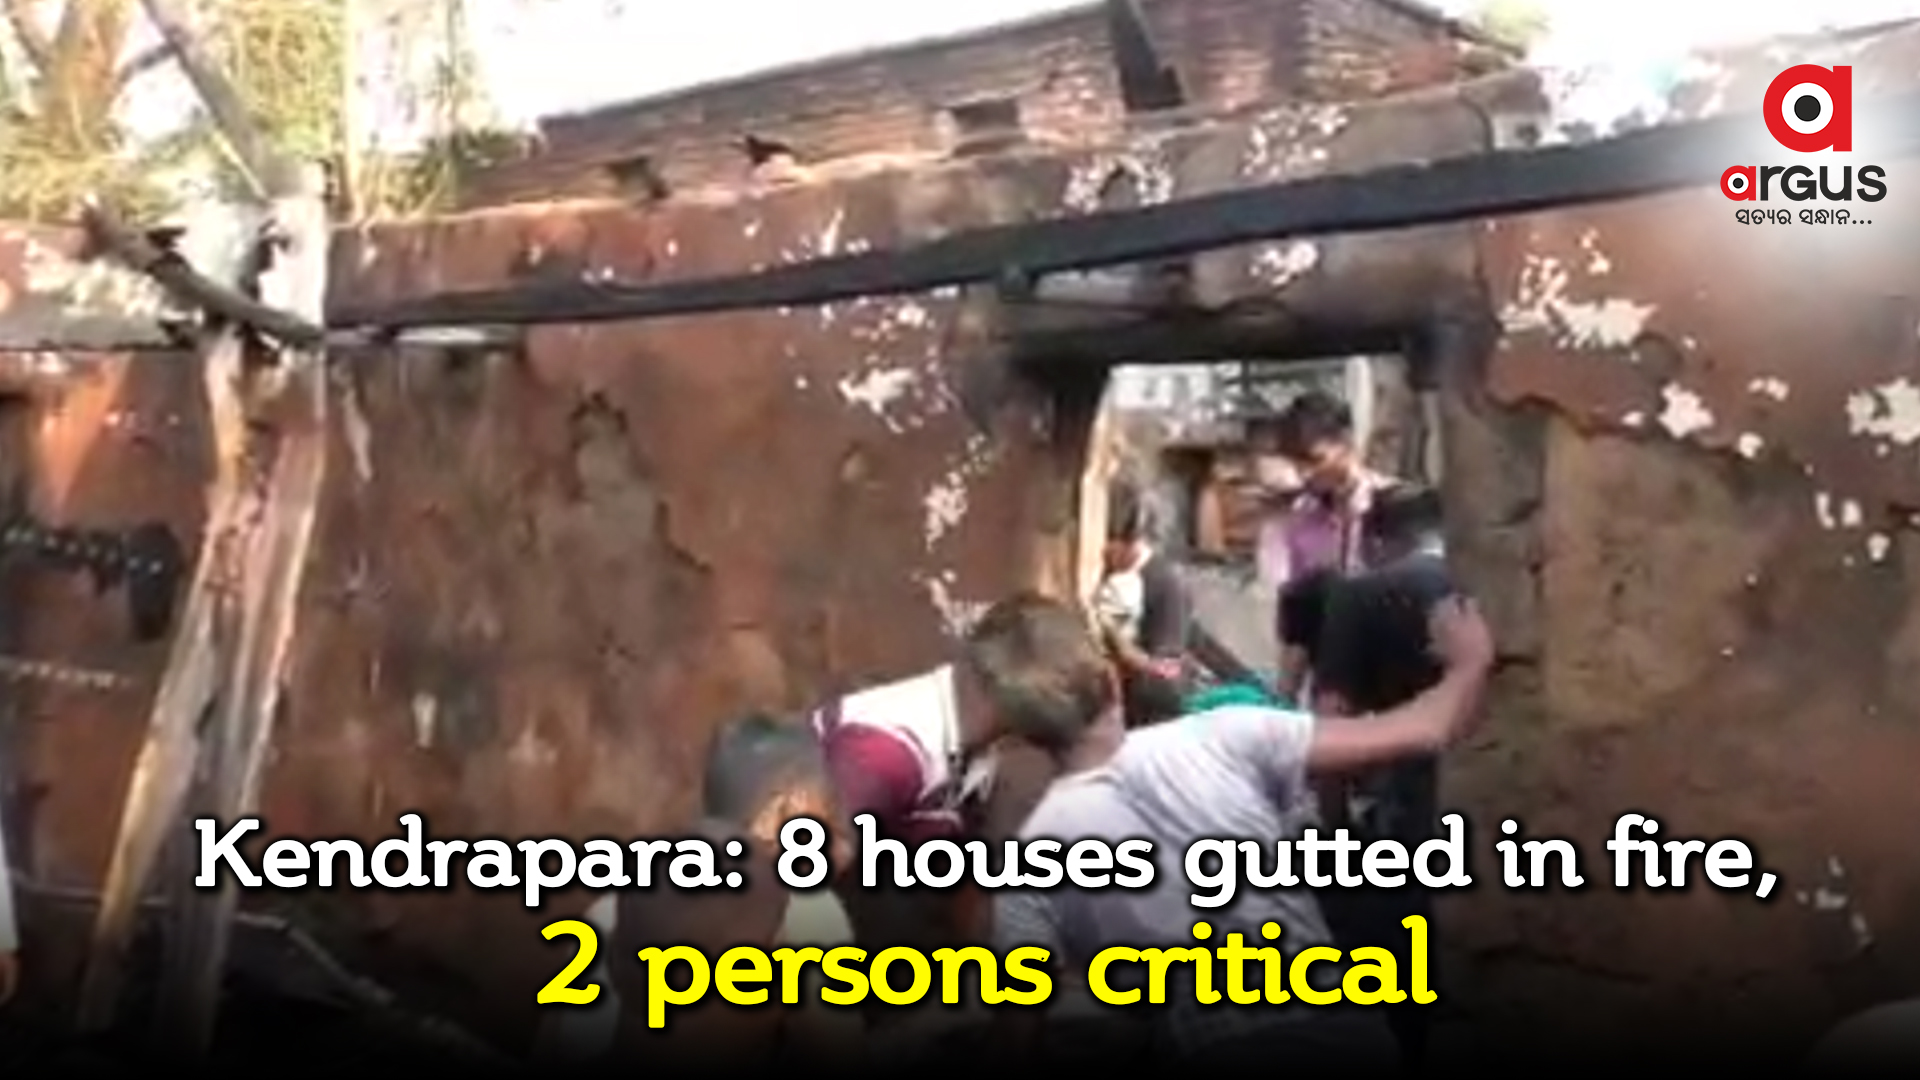 Kendrapara: 8 houses gutted in fire, 2 persons critical